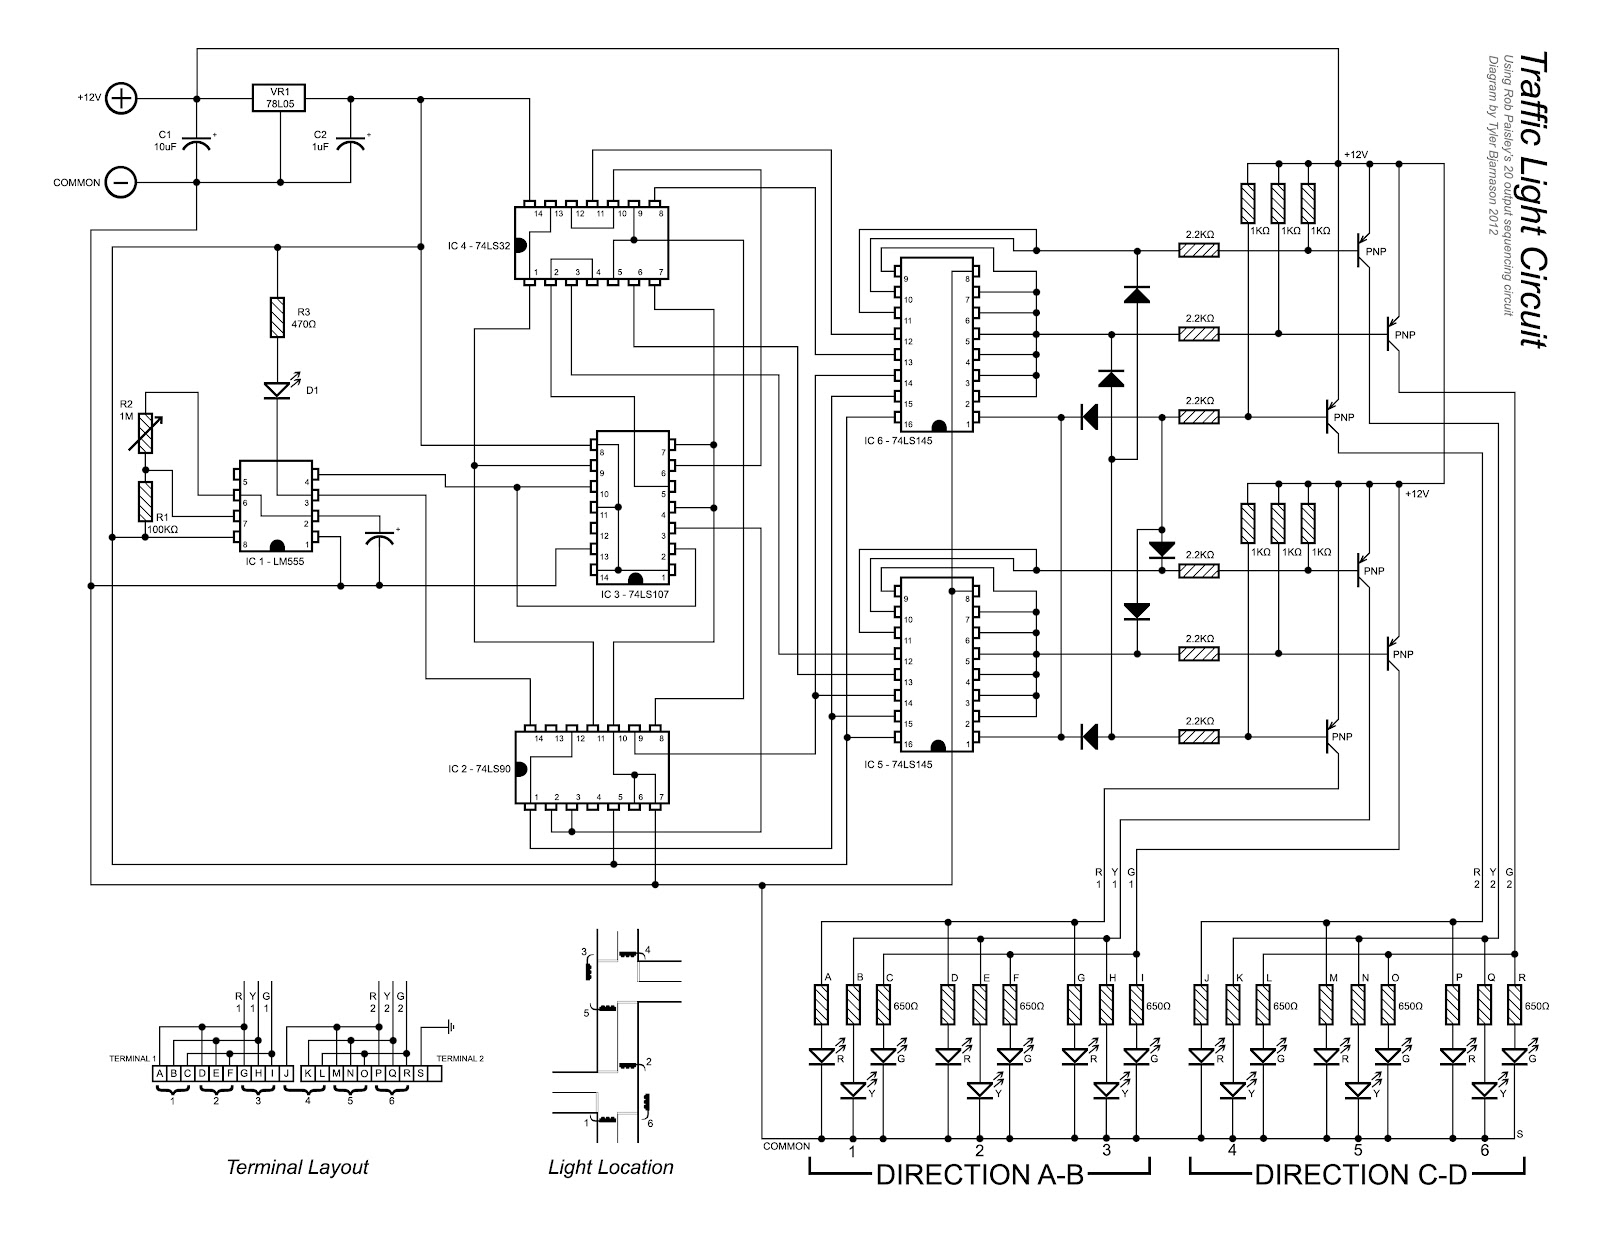 medium resolution of wiring diagram for traffic light controller circuit